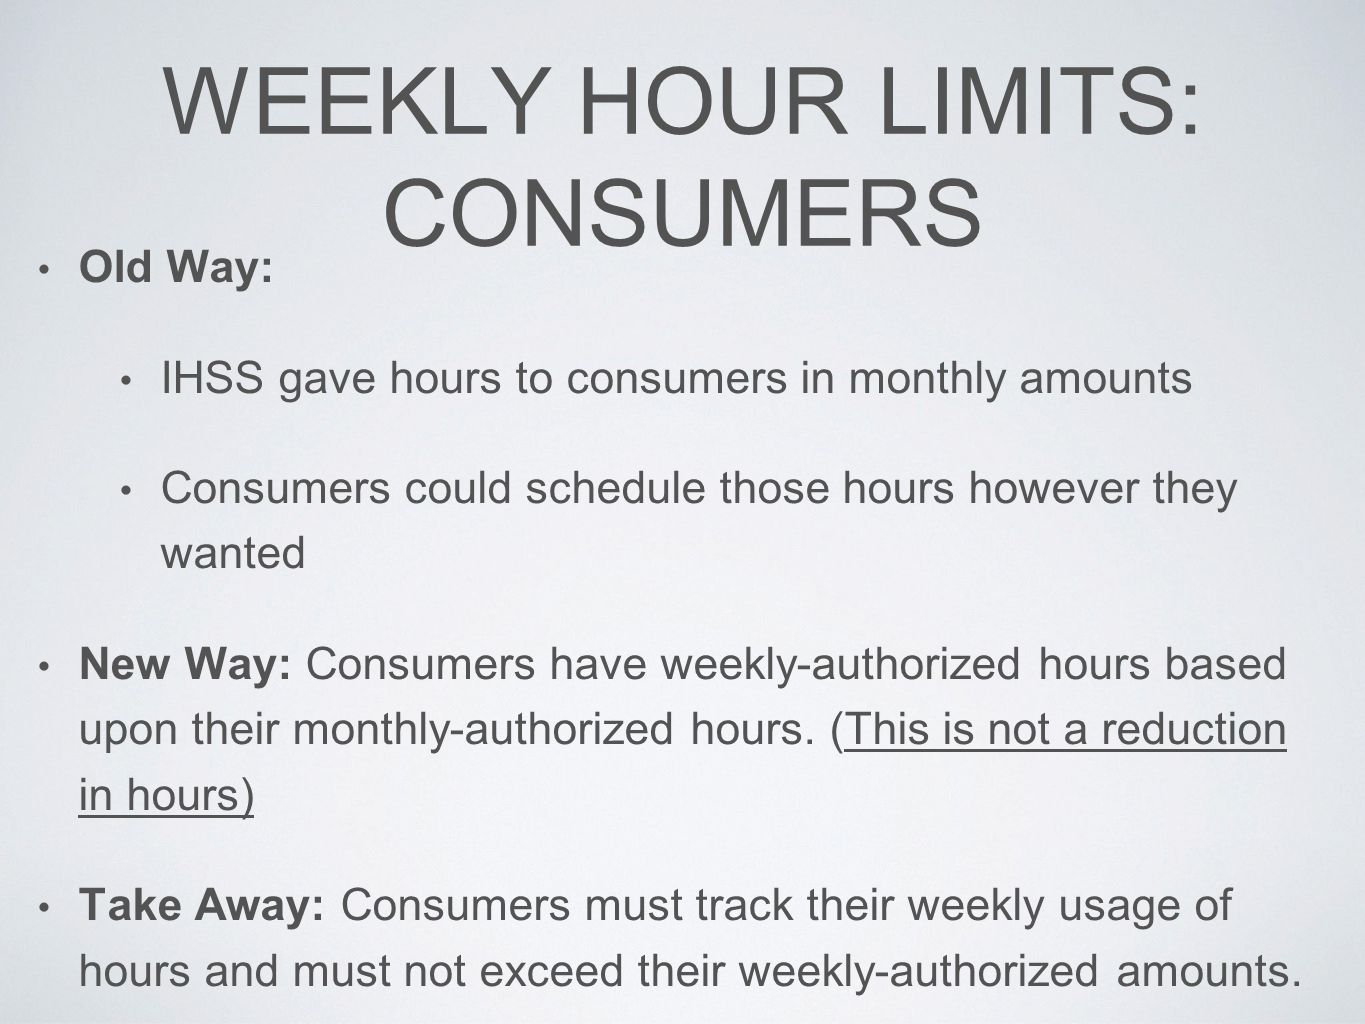 WEEKLY HOUR LIMITS: CONSUMERS